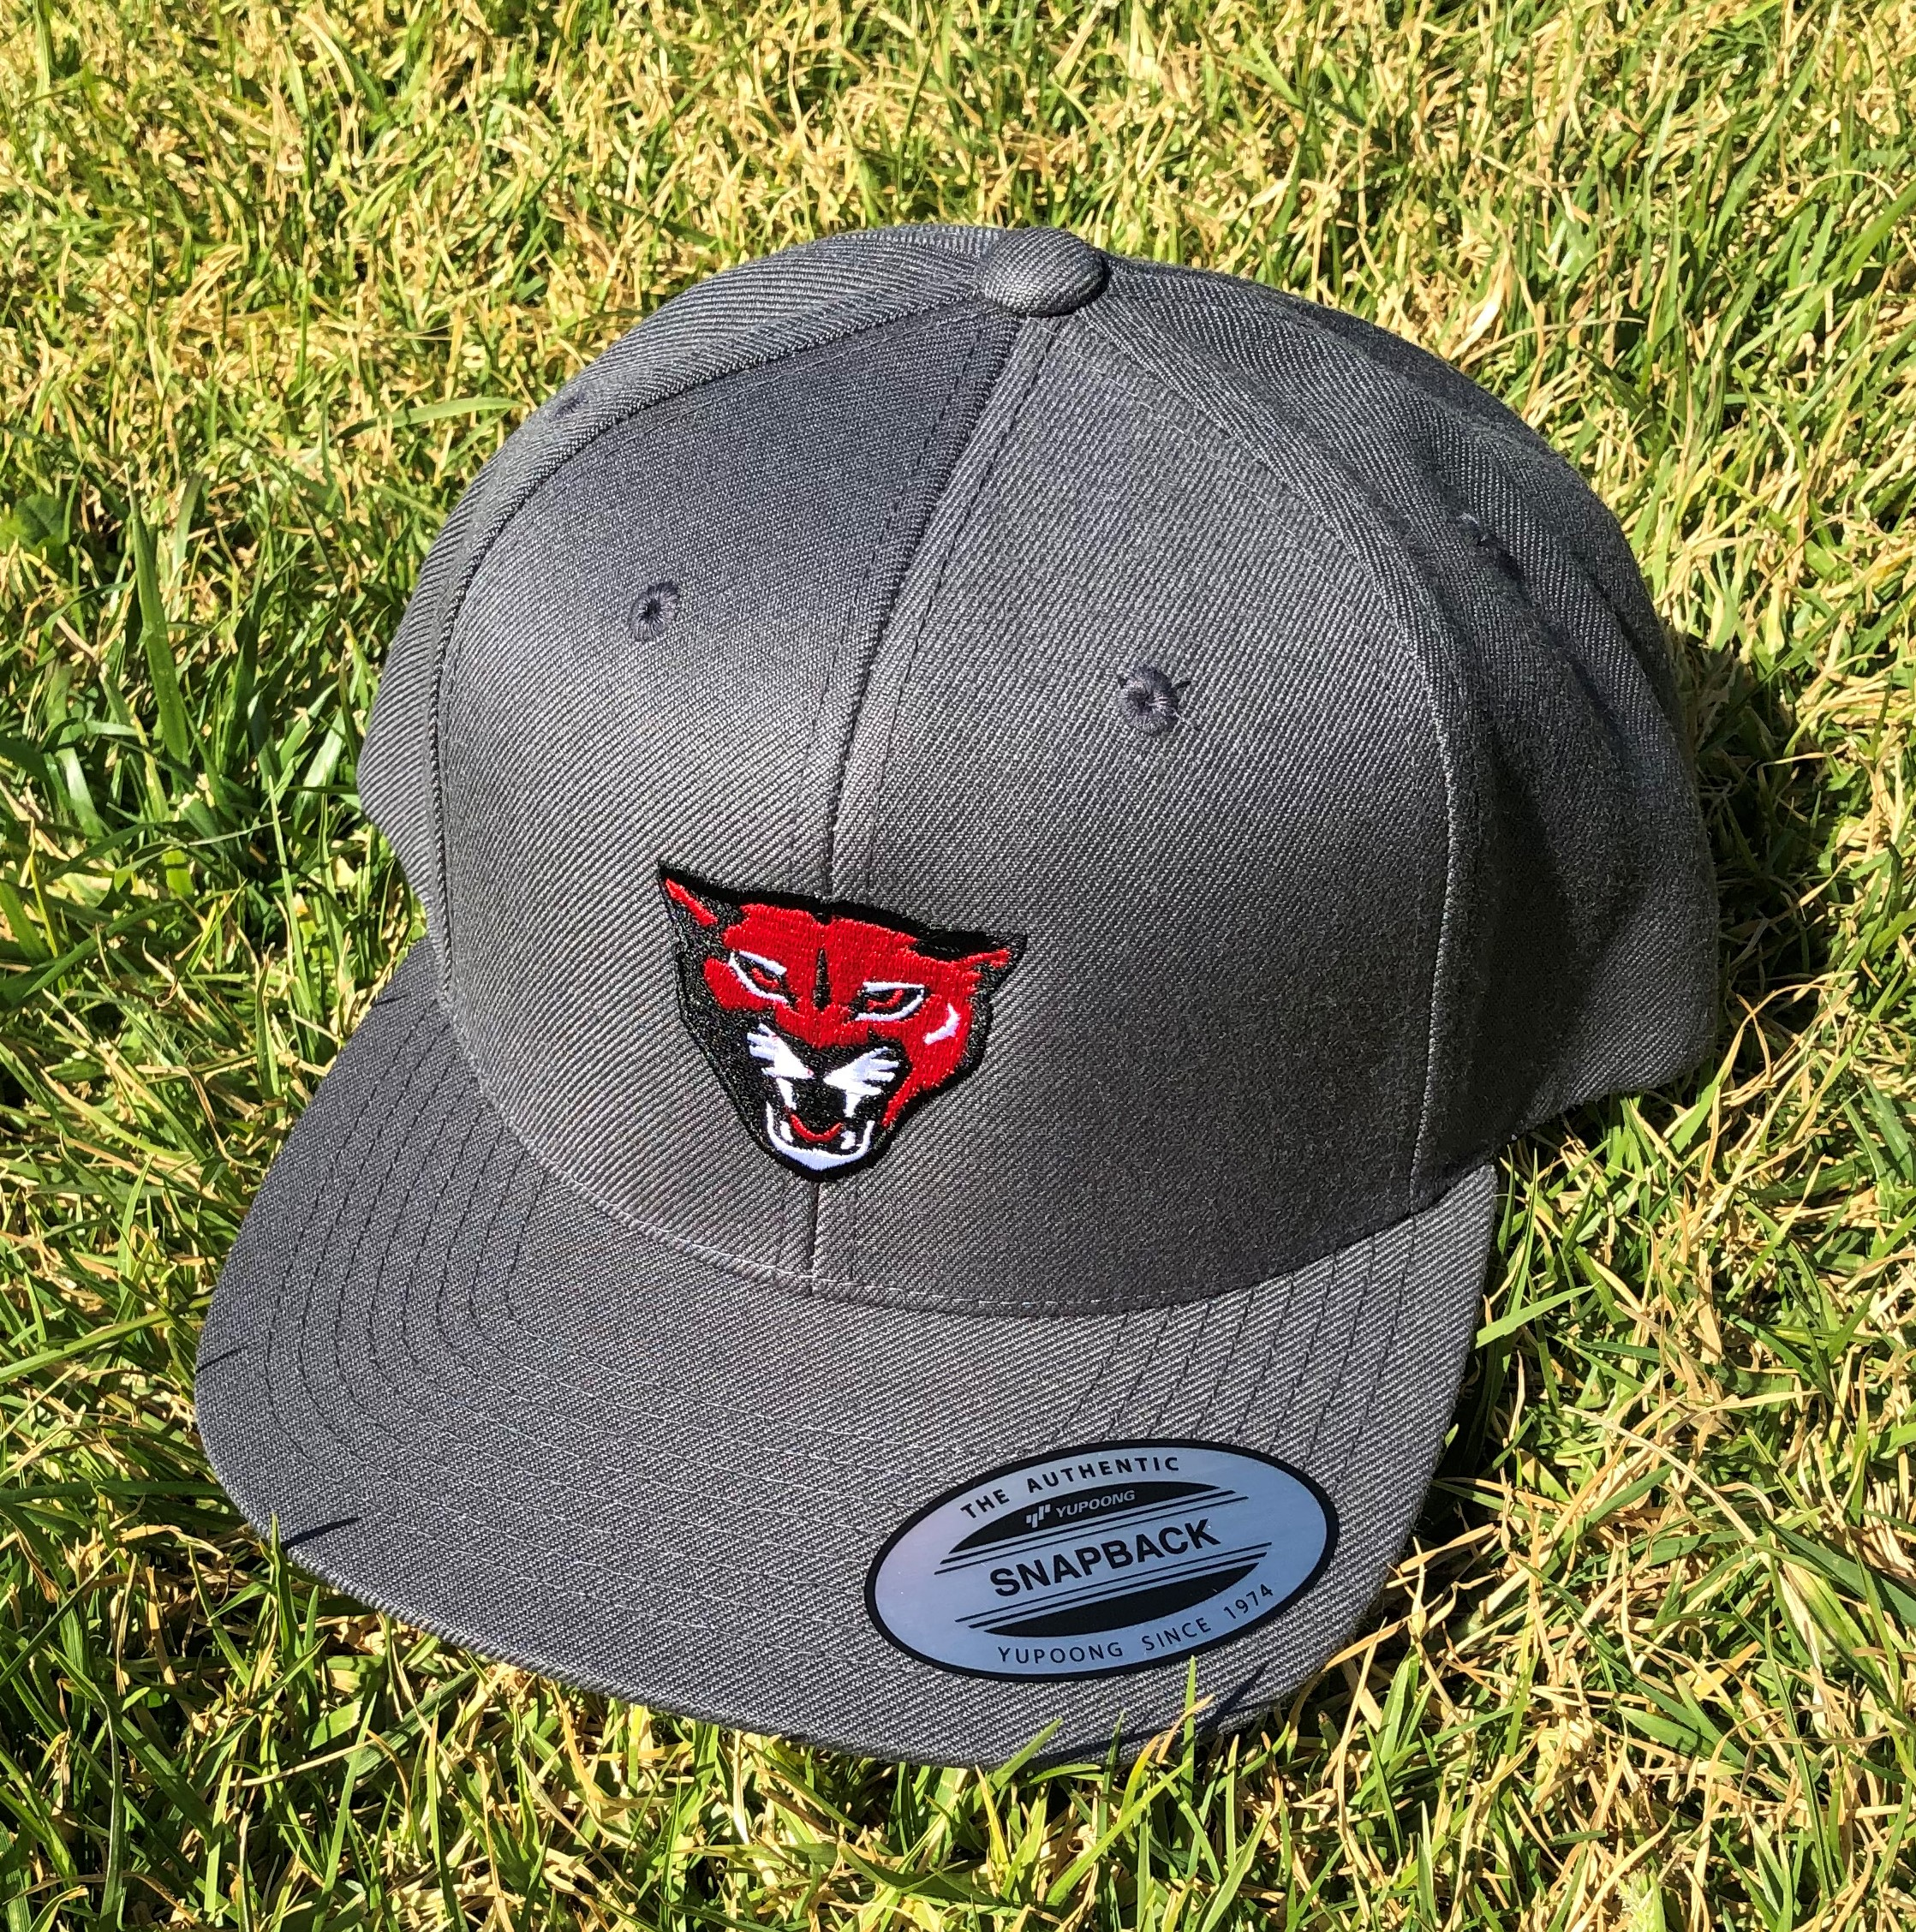 grey baseball cap with red cougar face